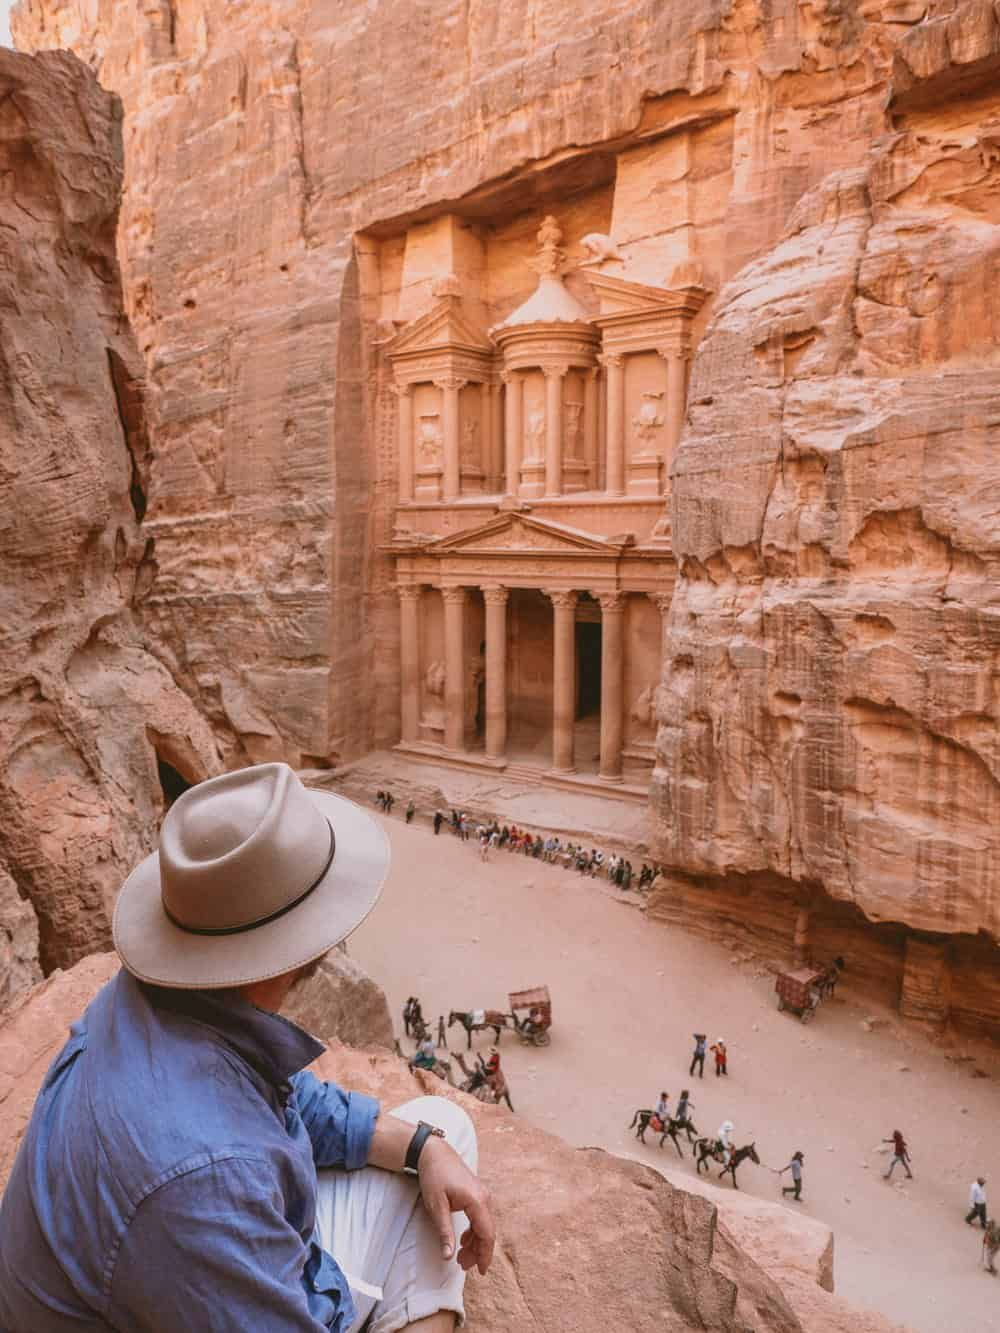 rasguño Arrastrarse Útil  The Best Locations & Places to Stay in Jordan in 2020 | Cool places to  visit, Travel photos, Beautiful places to visit